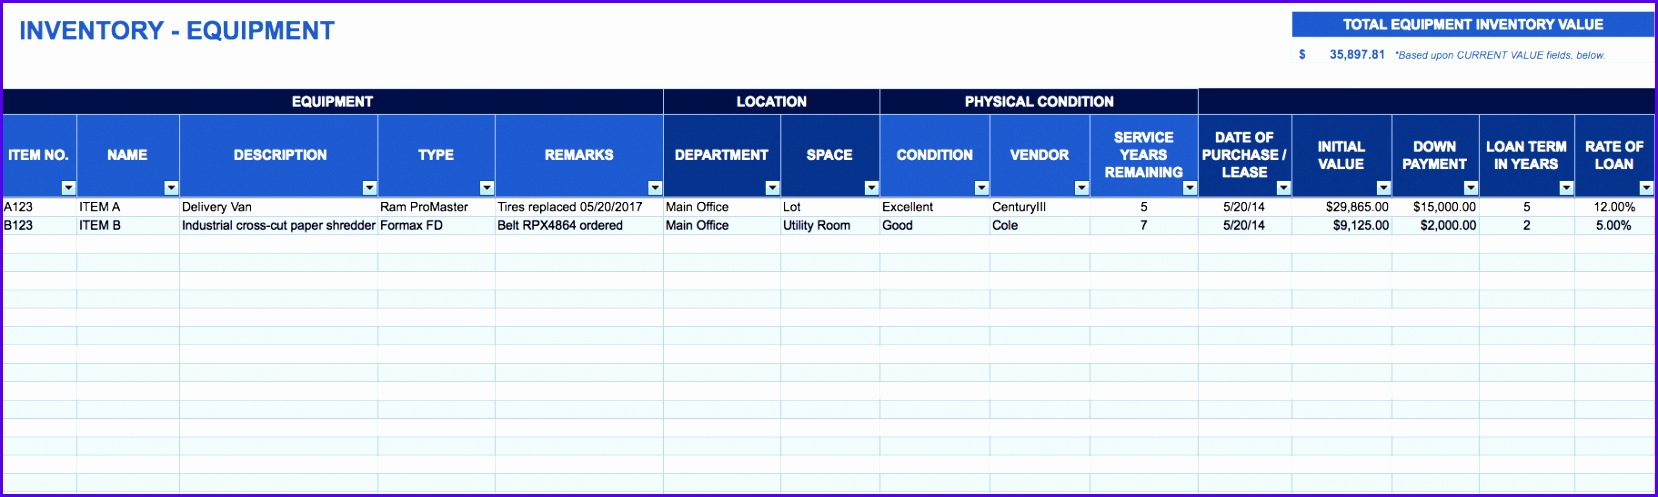 Equipment inventory template Download Excel Template 1658497